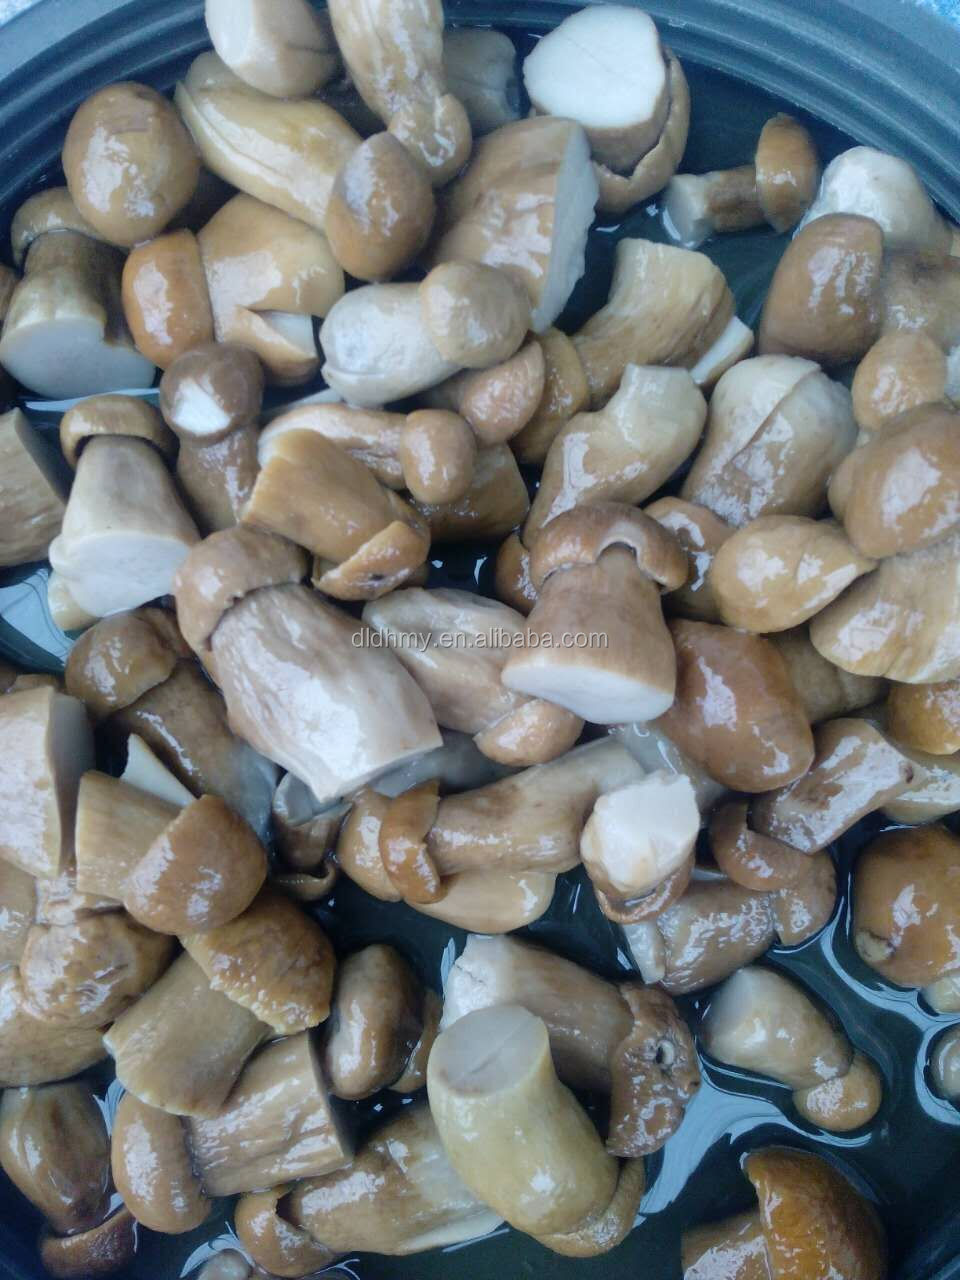 edible mushrooms types